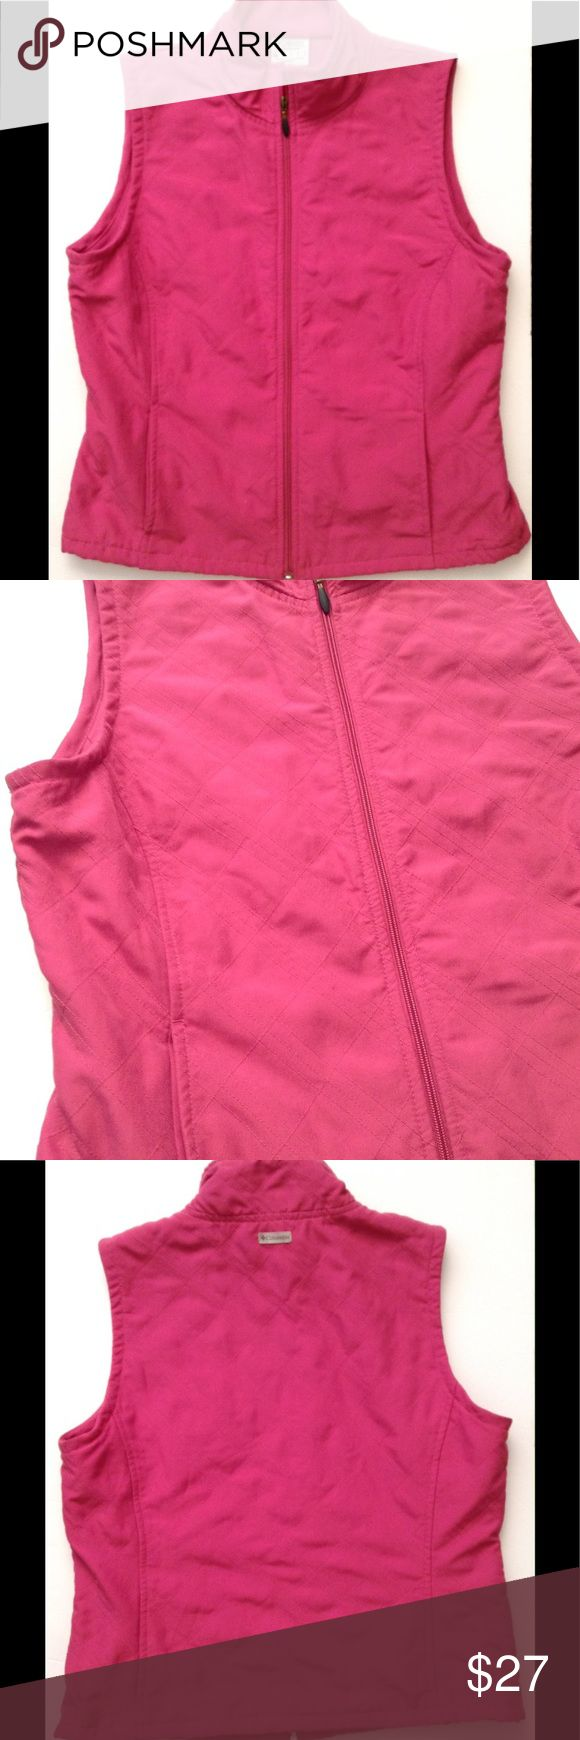 🆕 Women's COLUMBIA SPORTSWEAR PINK VEST Zip-Up PS Magenta/Fuchsia color: COLUMBIA SPORTSWEAR COMPANY VEST kris-cross Diamond pattern/stitching, 100% Polyester she'll; Machine Wash Cold. Size petite Small. In excellent used condition. Columbia Jackets & Coats Vests